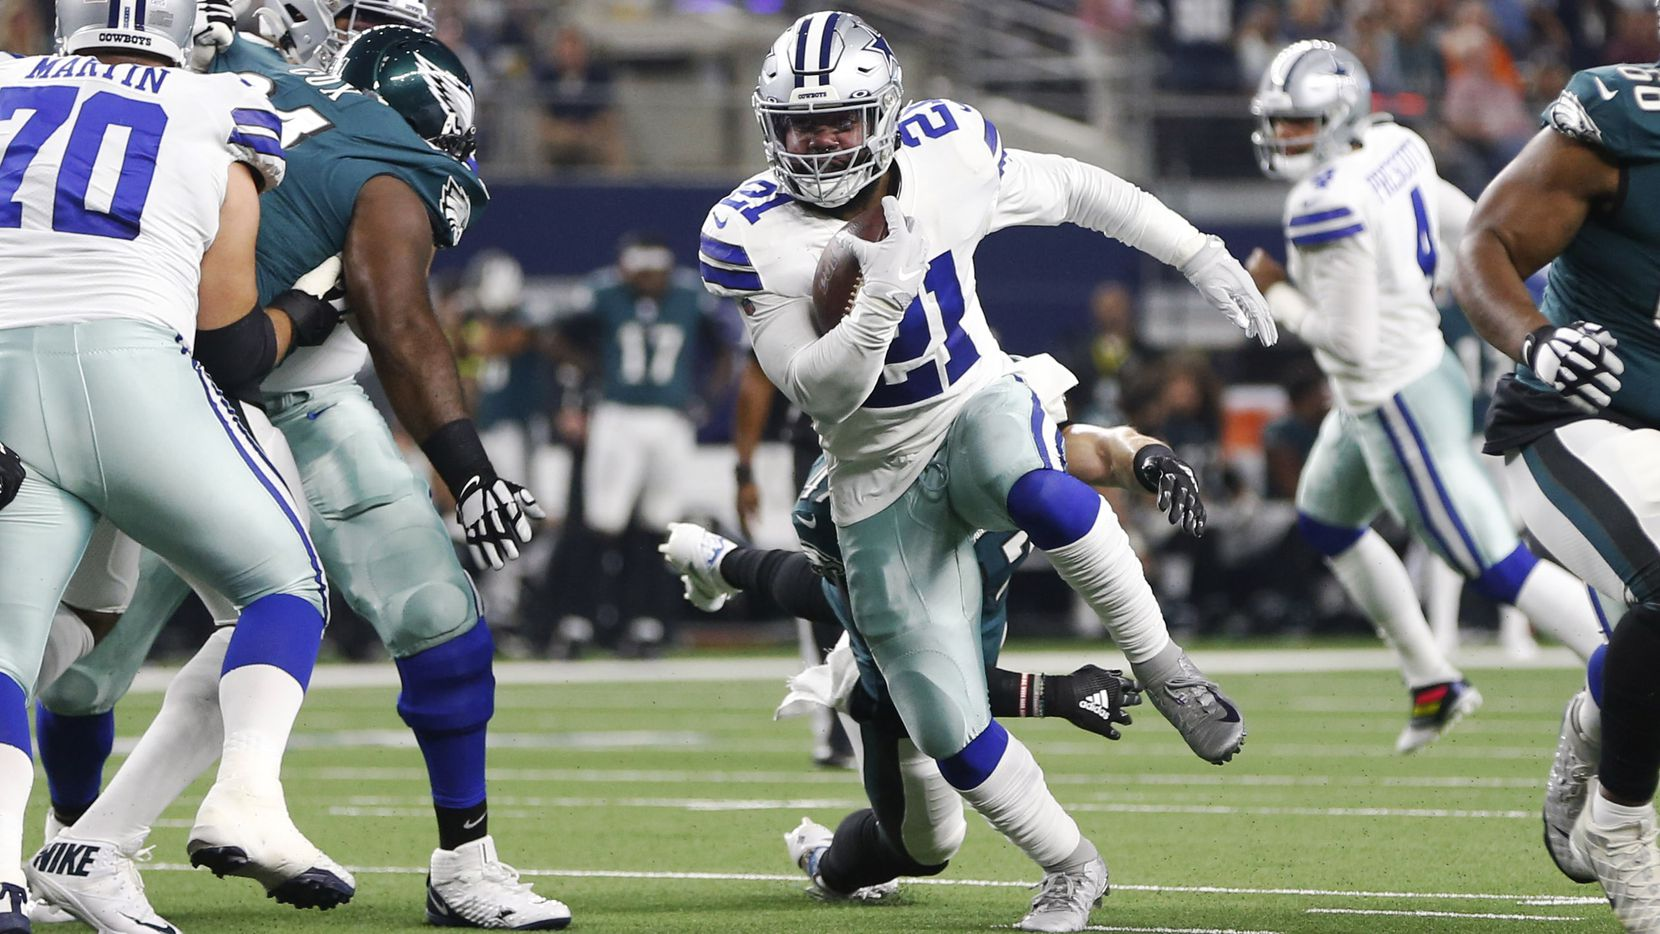 Cowboys running back Ezekiel Elliott (21) rushes upfield in the first half of a game against the Philadelphia Eagles at AT&T Stadium in Arlington on Sunday, Oct. 20, 2019. (Vernon Bryant/The Dallas Morning News)